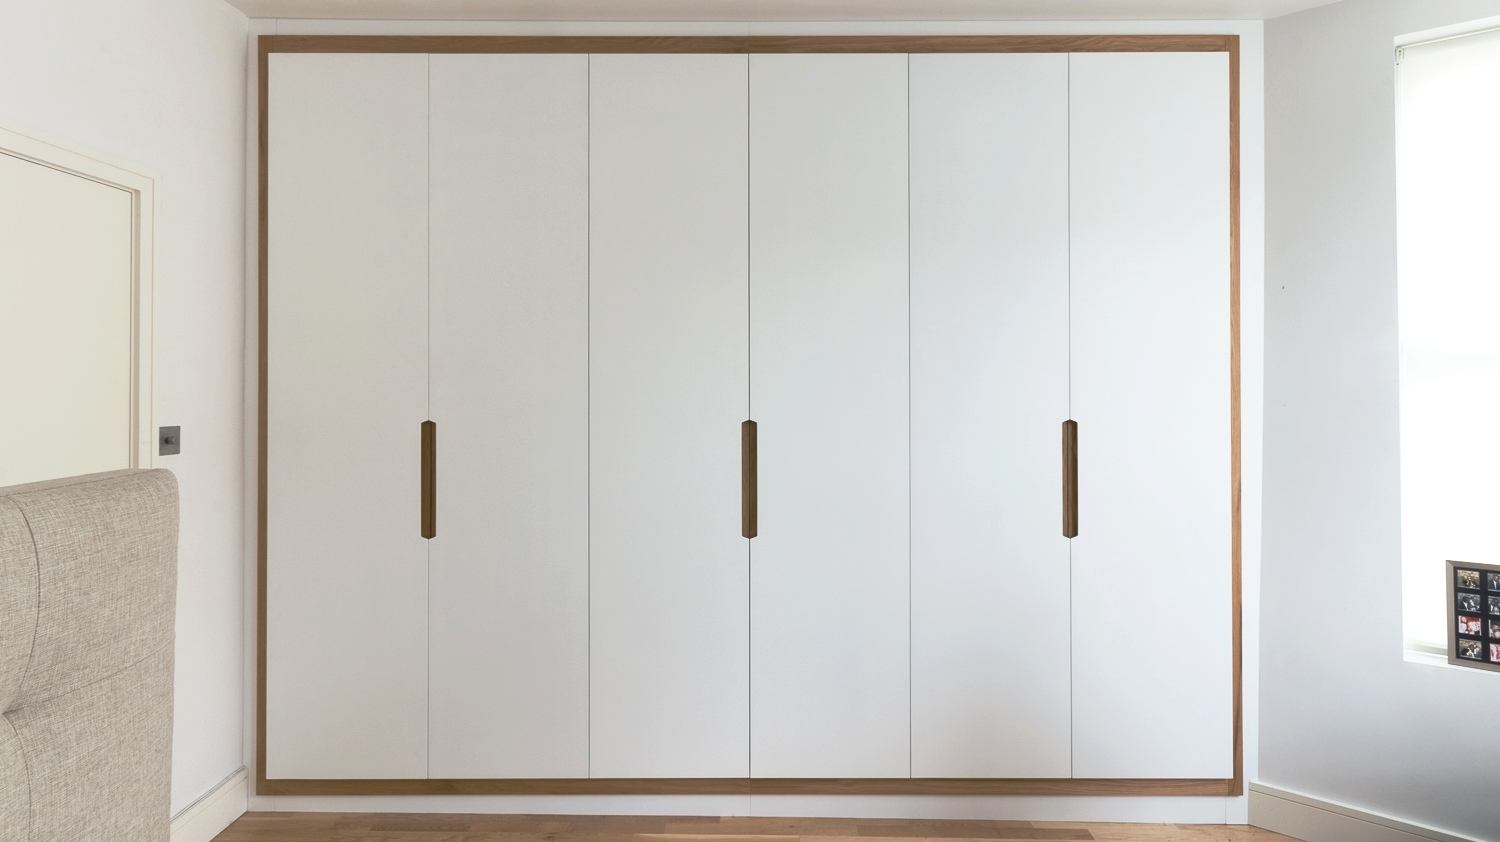 Langham rd bespoke fitted wardrobes with solid oak frame powell picano